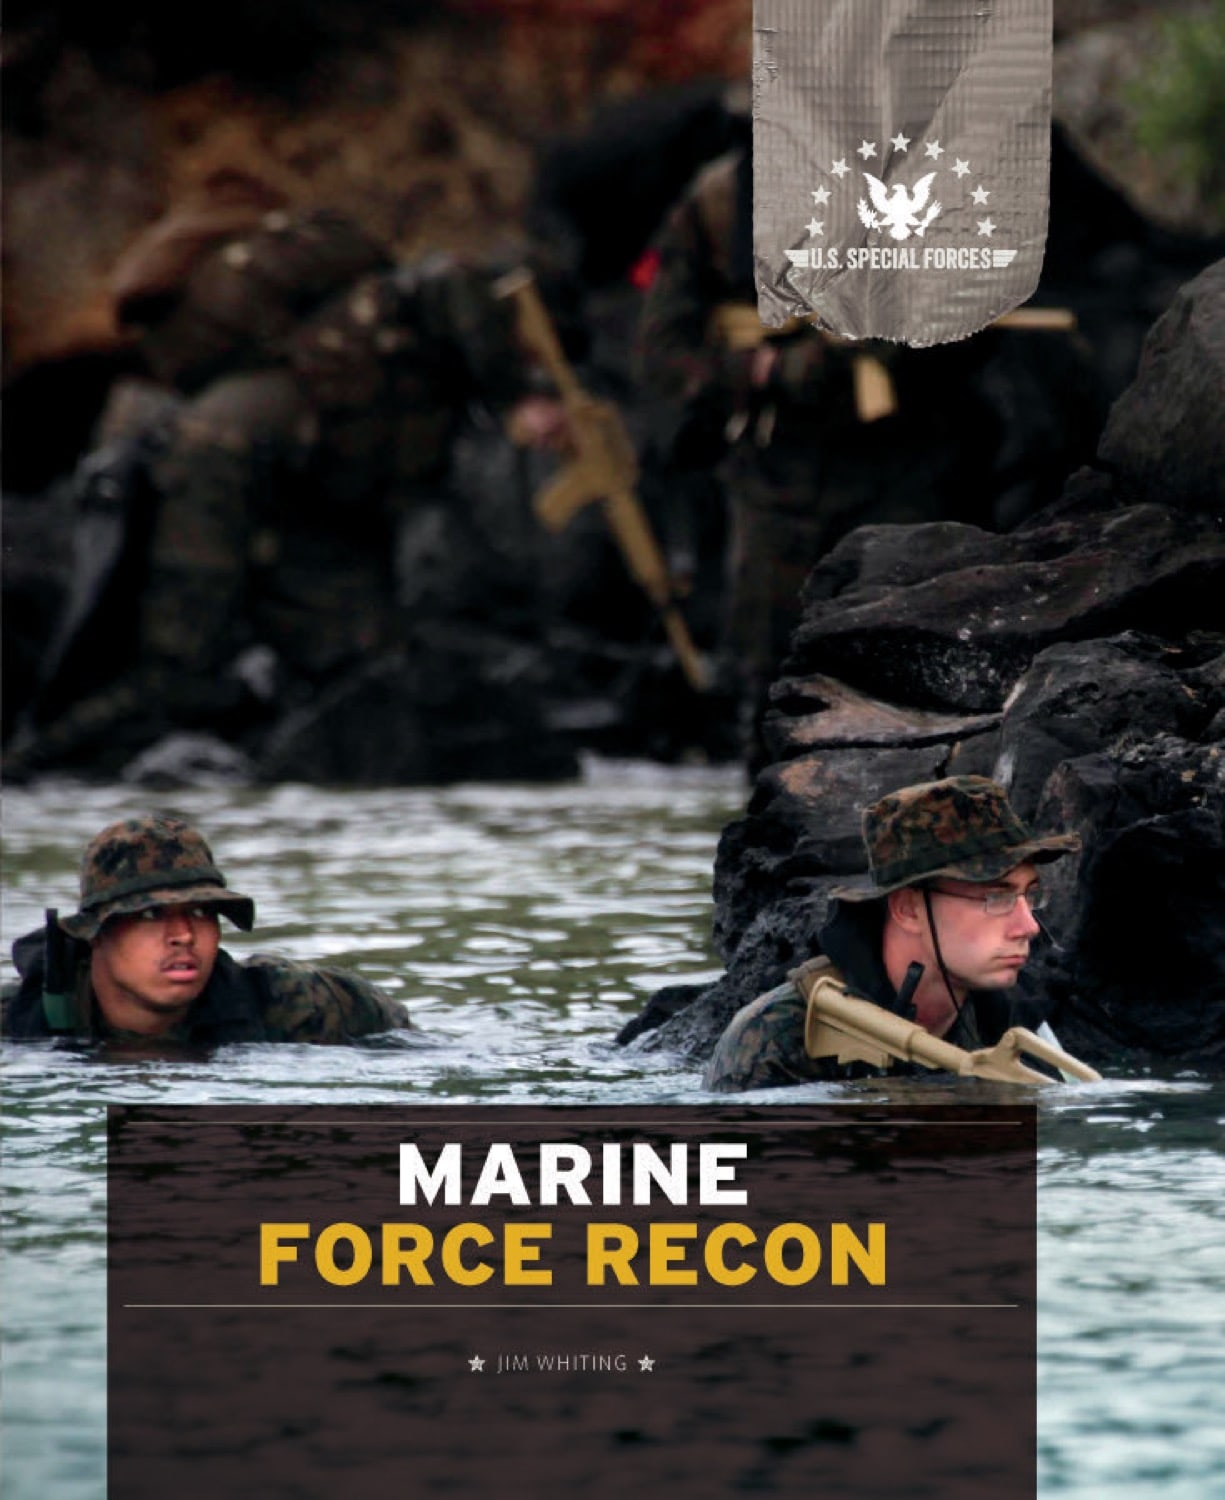 U.S. Special Forces: Marine Force Recon